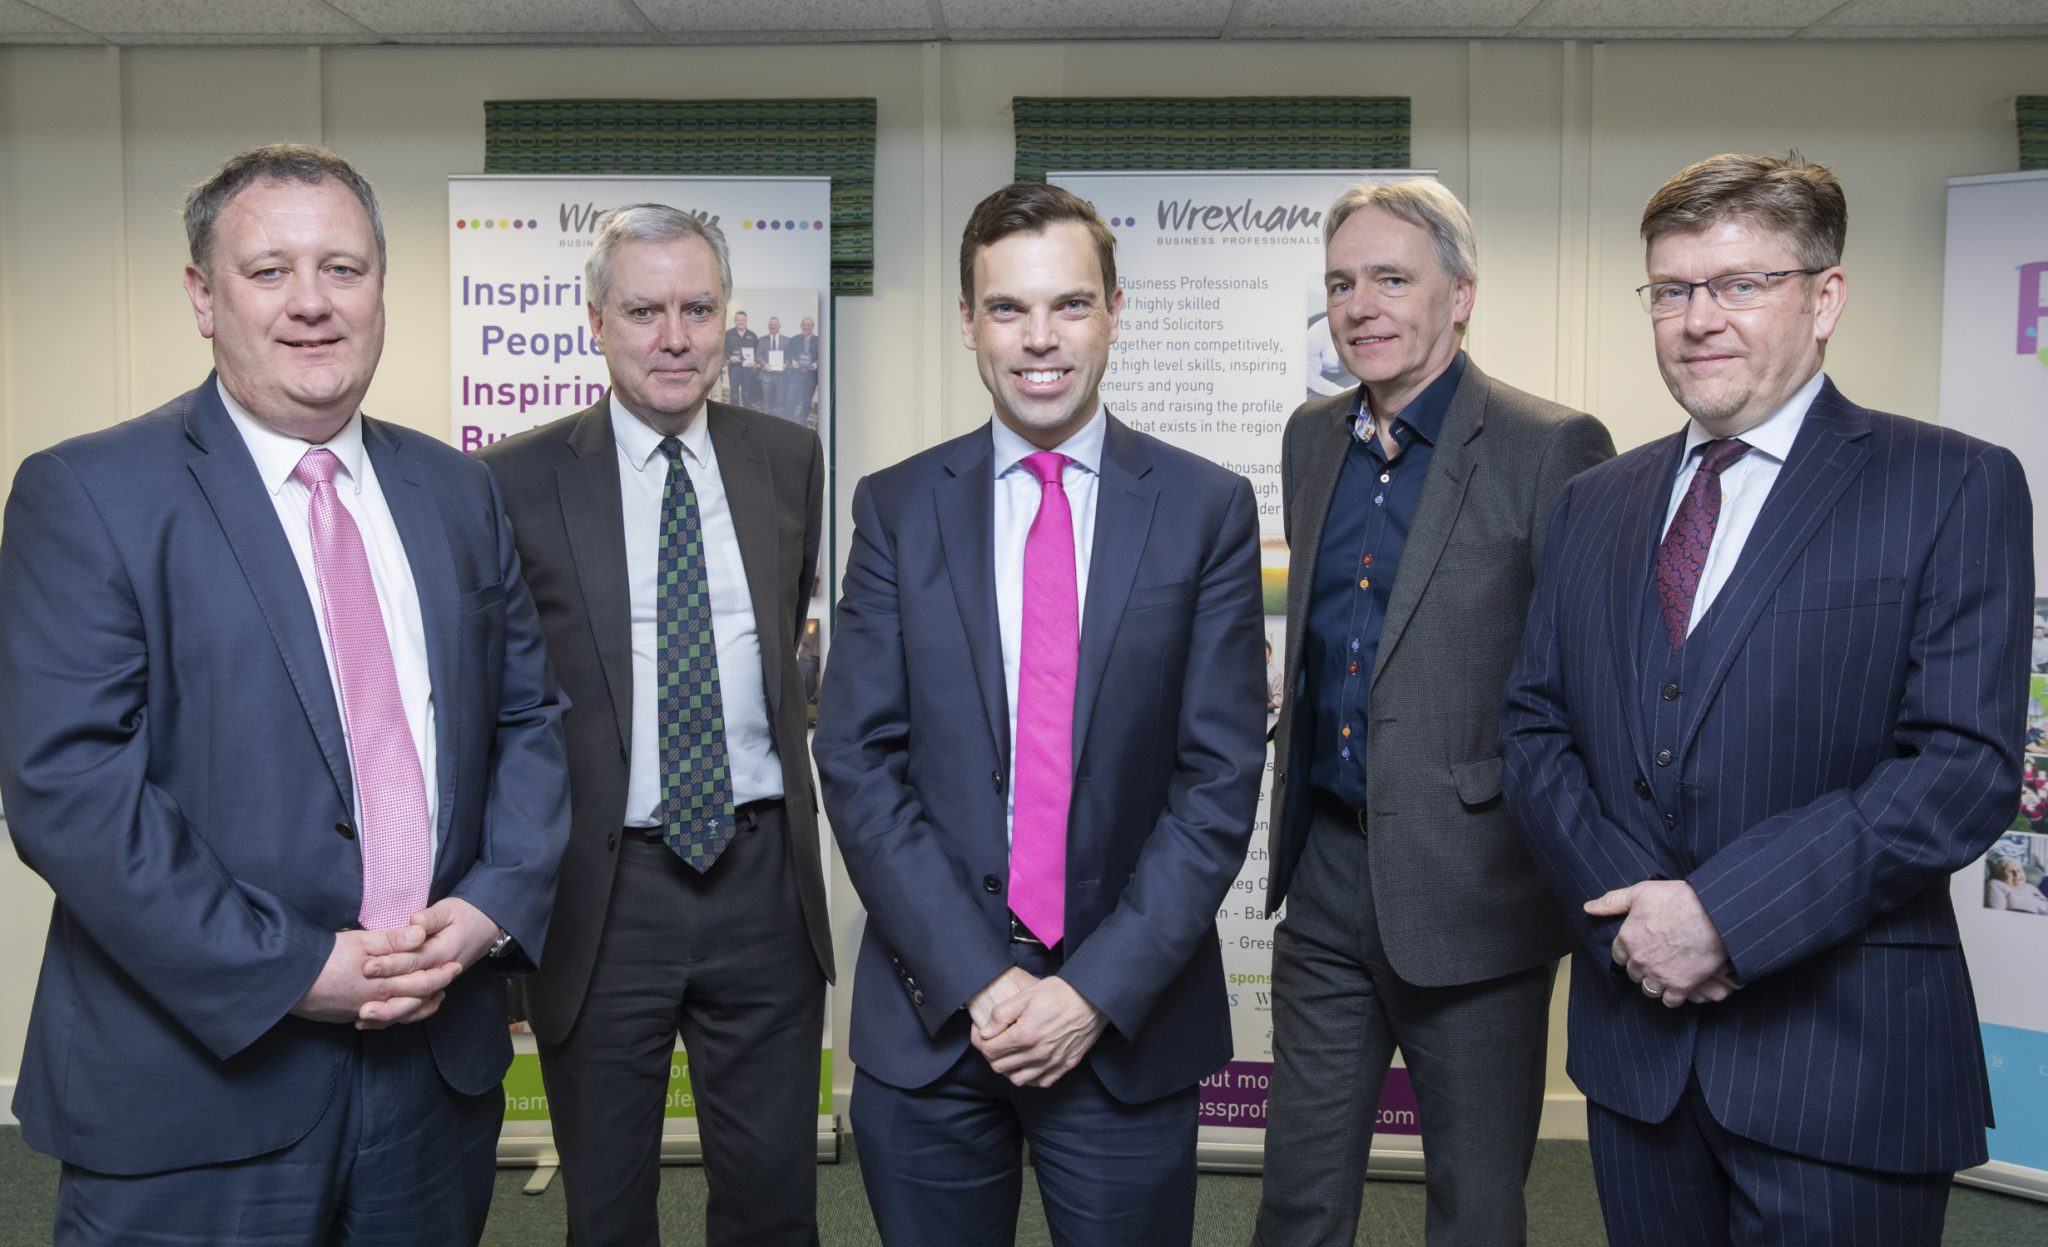 Poll shows Wrexham company bosses want to scrap Brexit